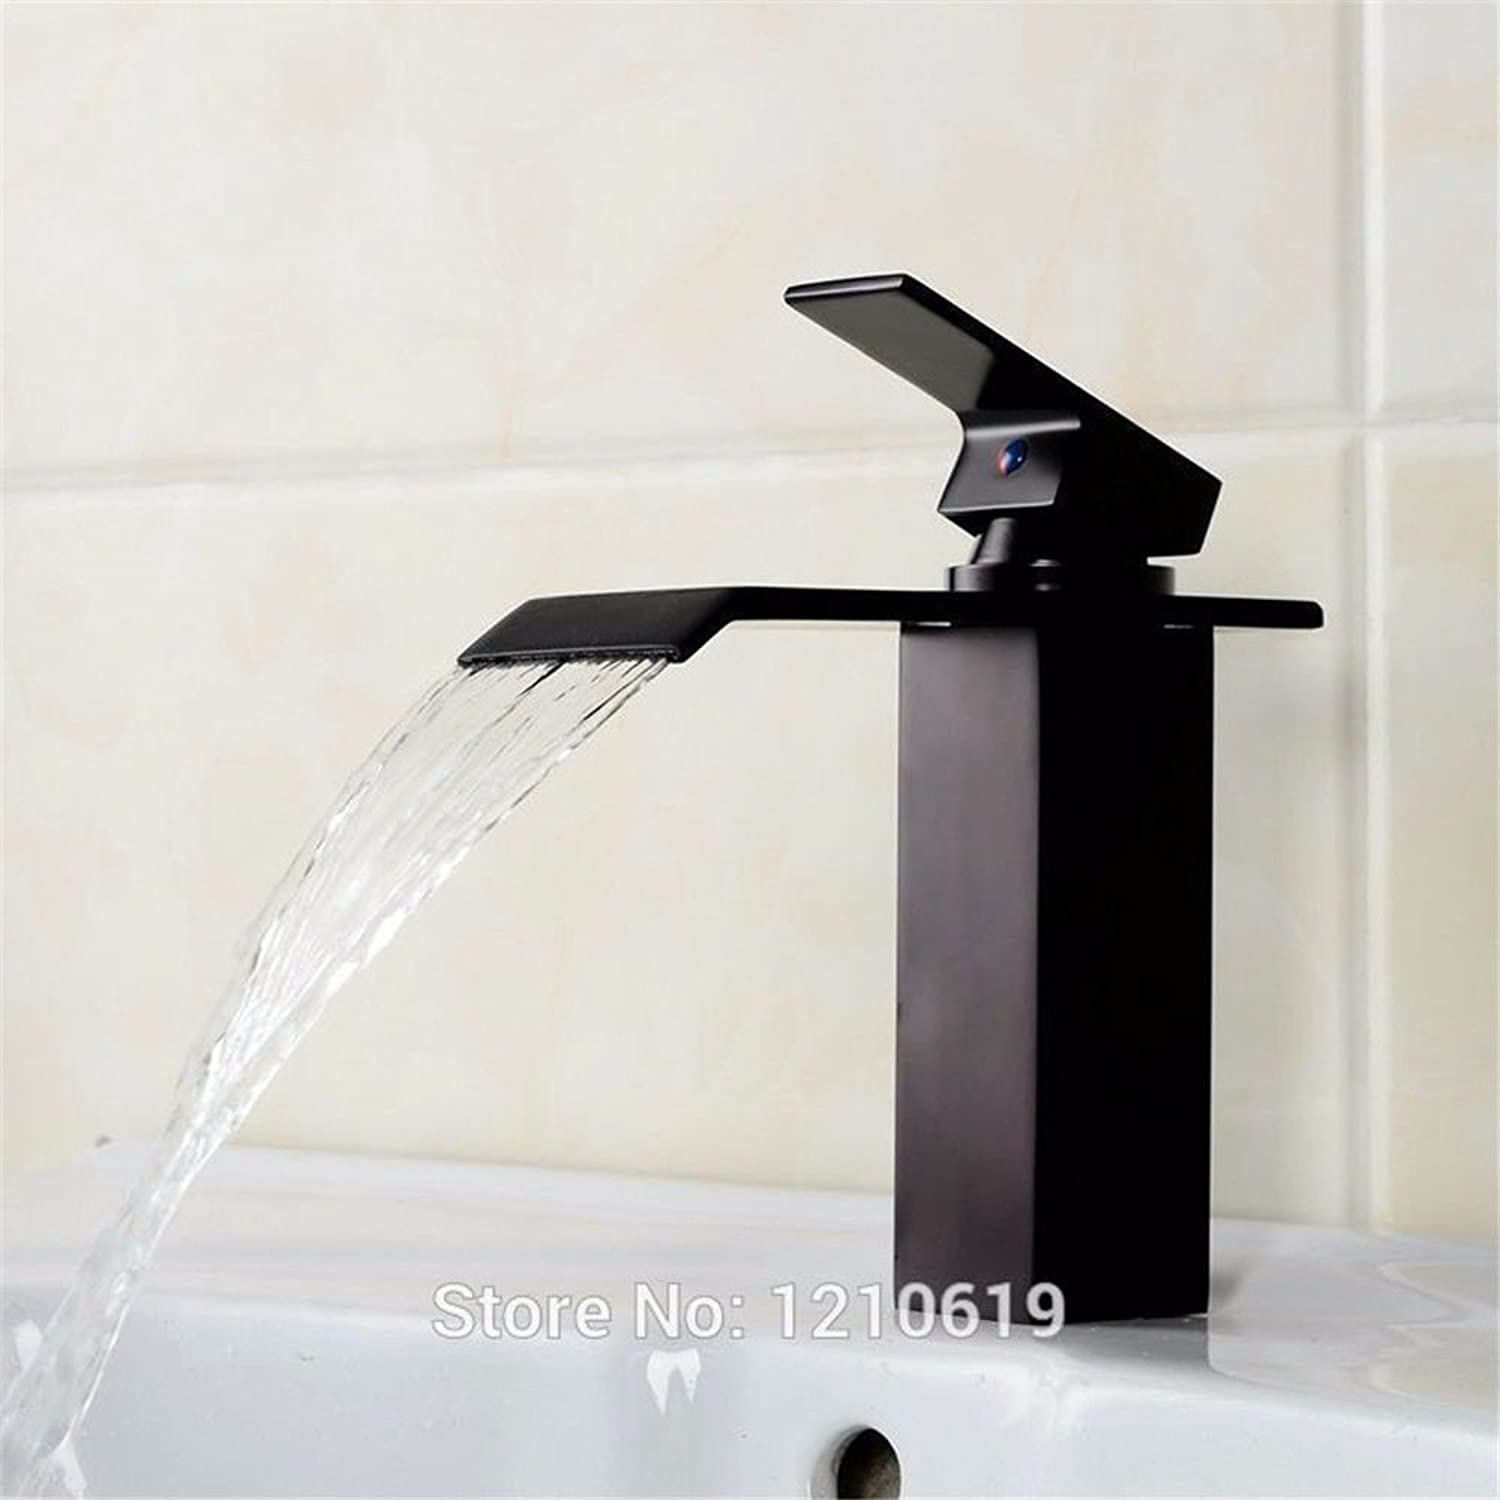 LHbox Basin Mixer Tap Bathroom Sink Faucet BlackAntique faucet antique wash basins taps full copper plus high cold and hot antique basin Faucet